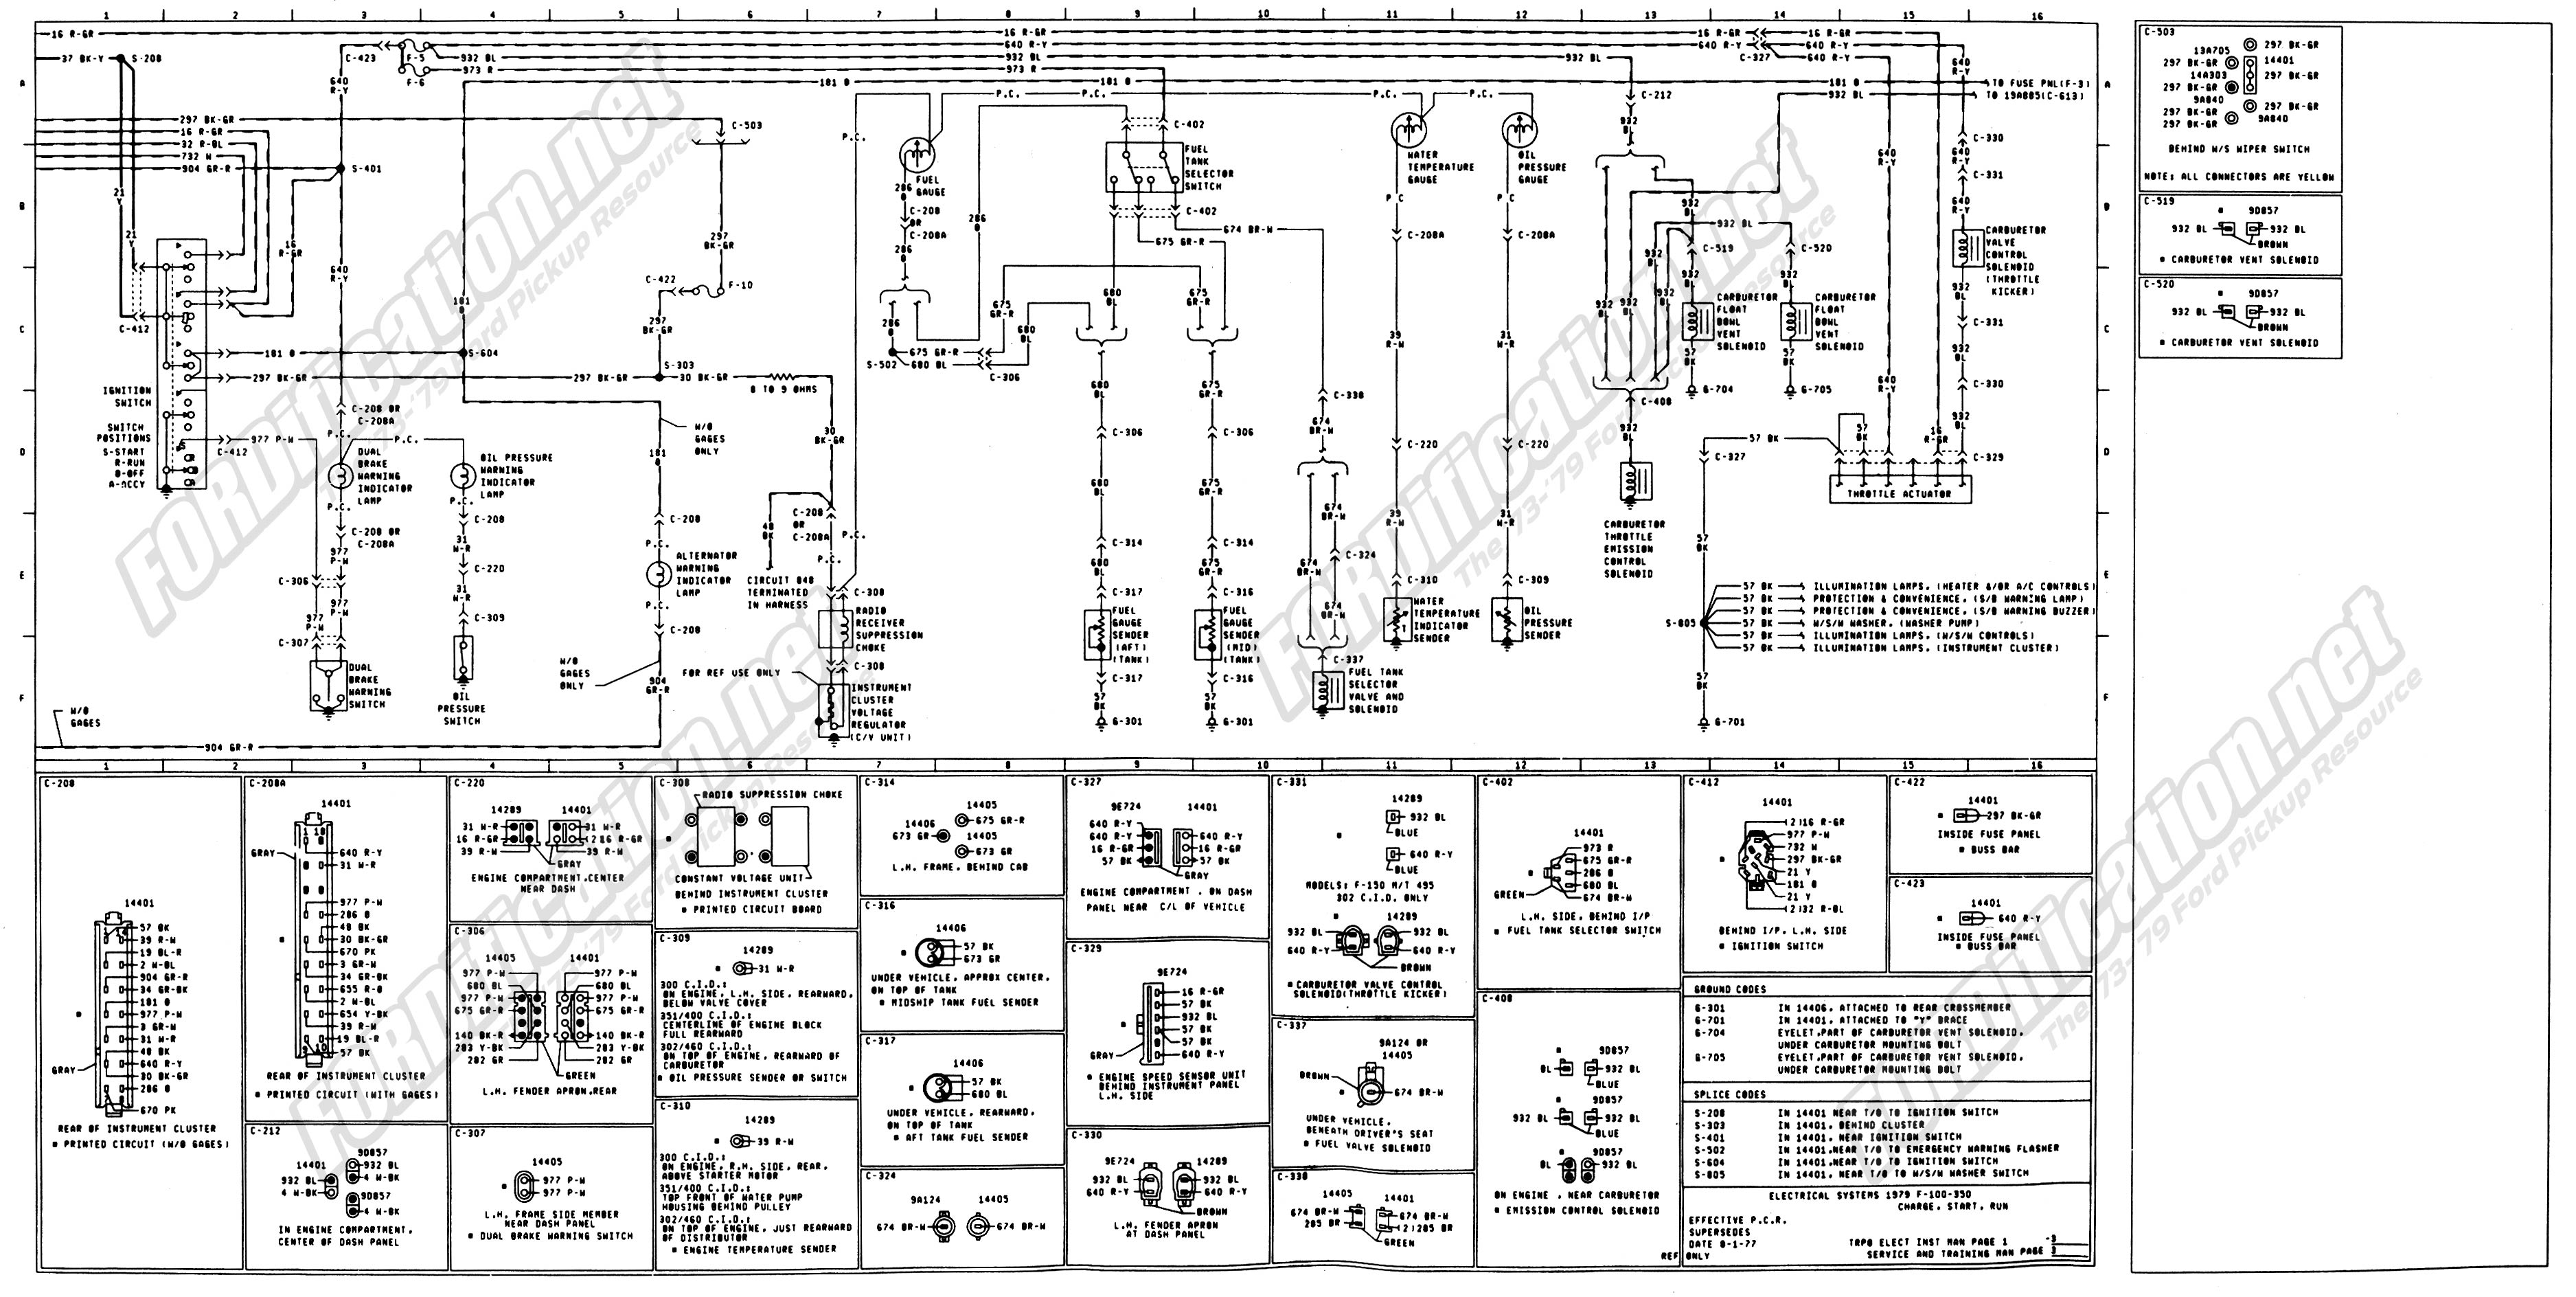 961502 Wiring Diagram Schamatic Help on ford transit connect 2010 fuse box diagram